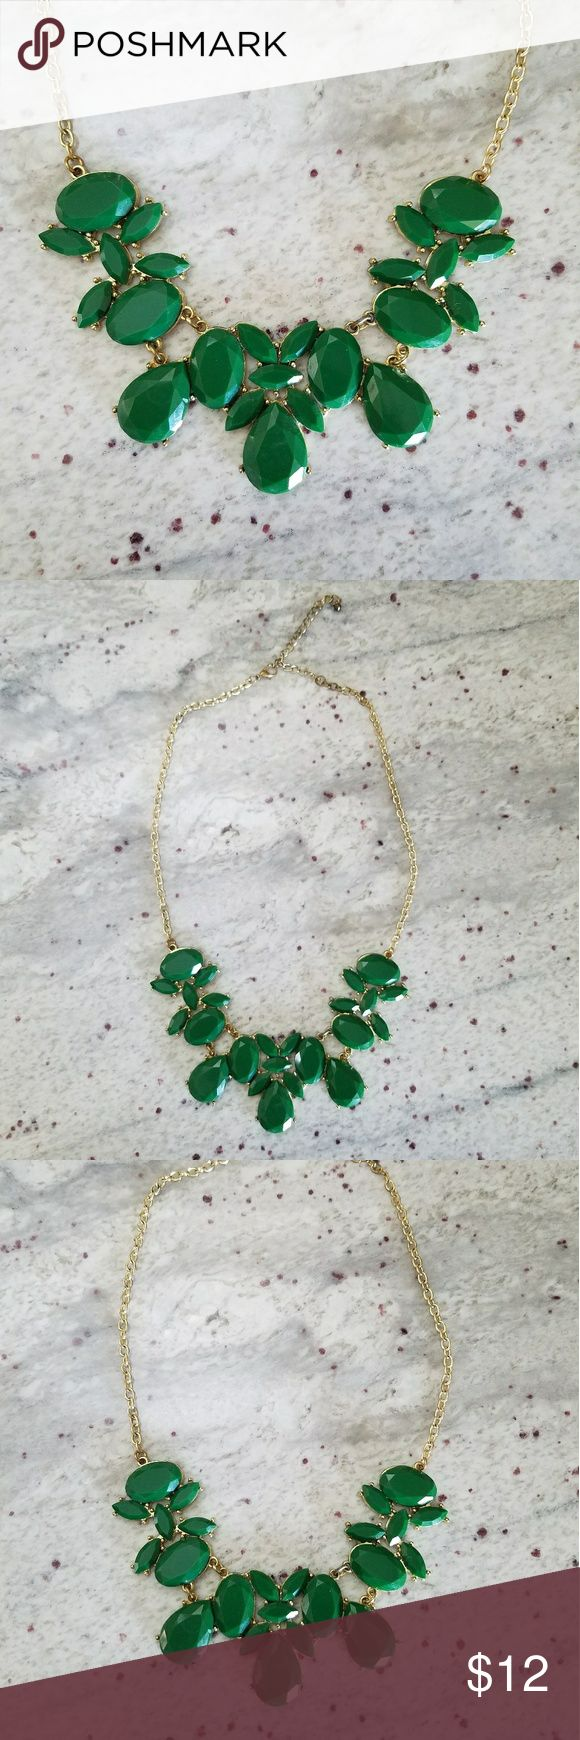 Green Statement Nekclace This green statement necklace is the perfect piece for a night out or to work. Jewelry Necklaces